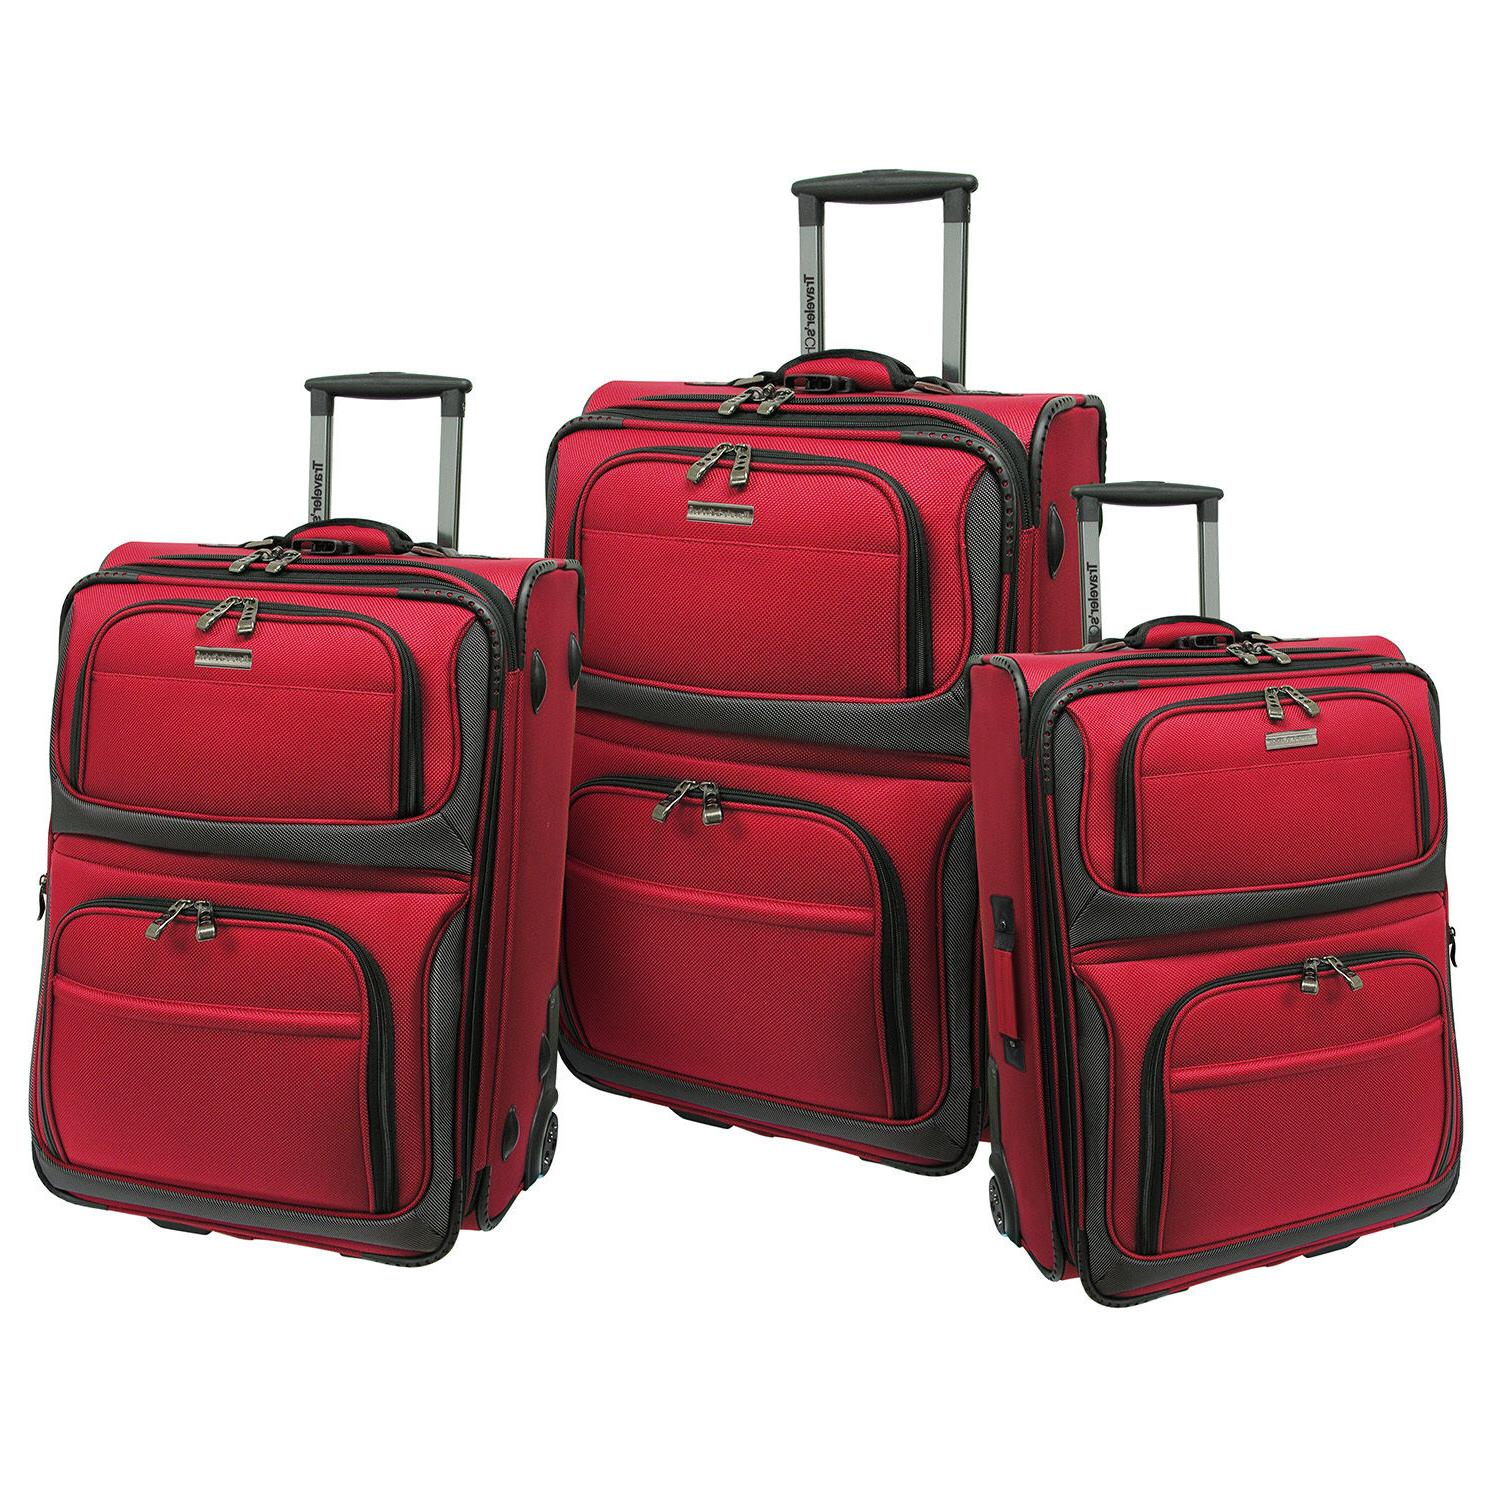 """Traveler's Choice 22"""" Carry-On Rolling Luggage Suitcase"""